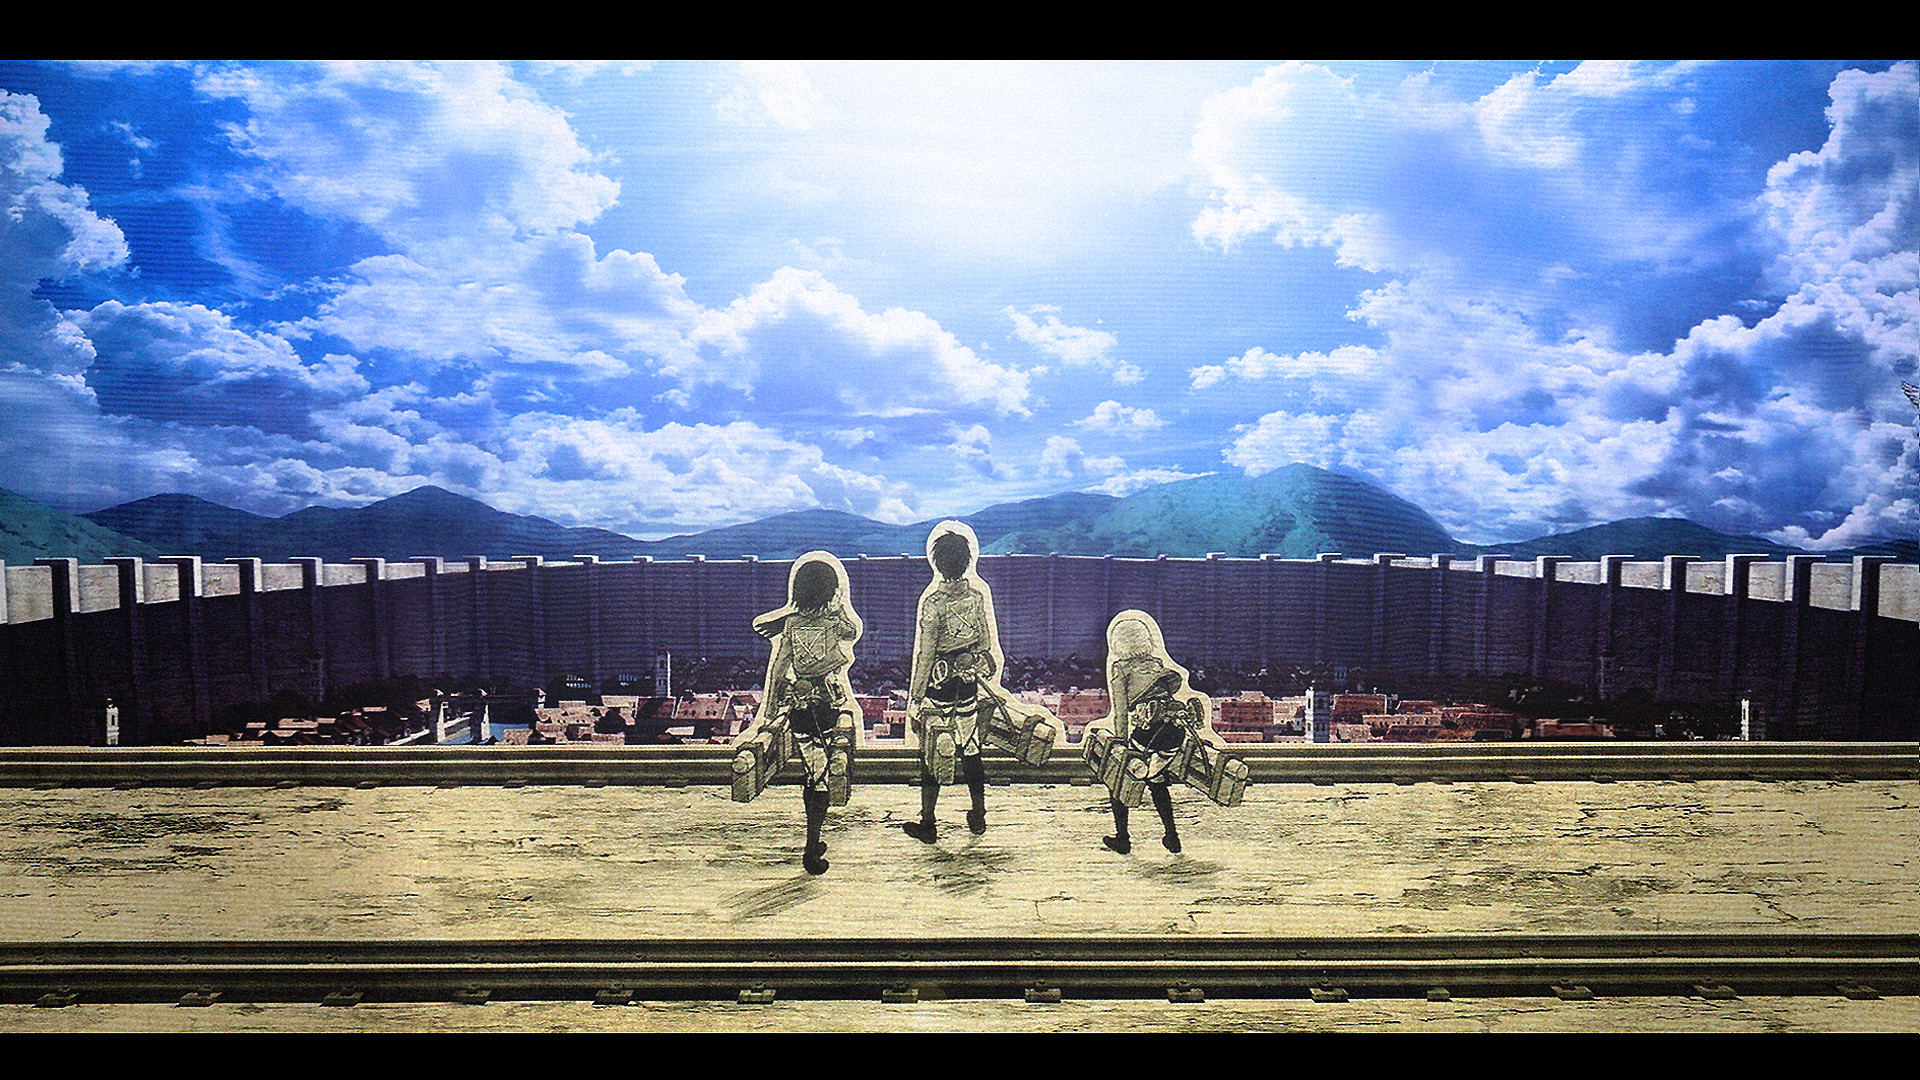 Epic Anime Backgrounds   HD Wallpapers   Pinterest   3d wallpaper, Wallpaper  and Anime